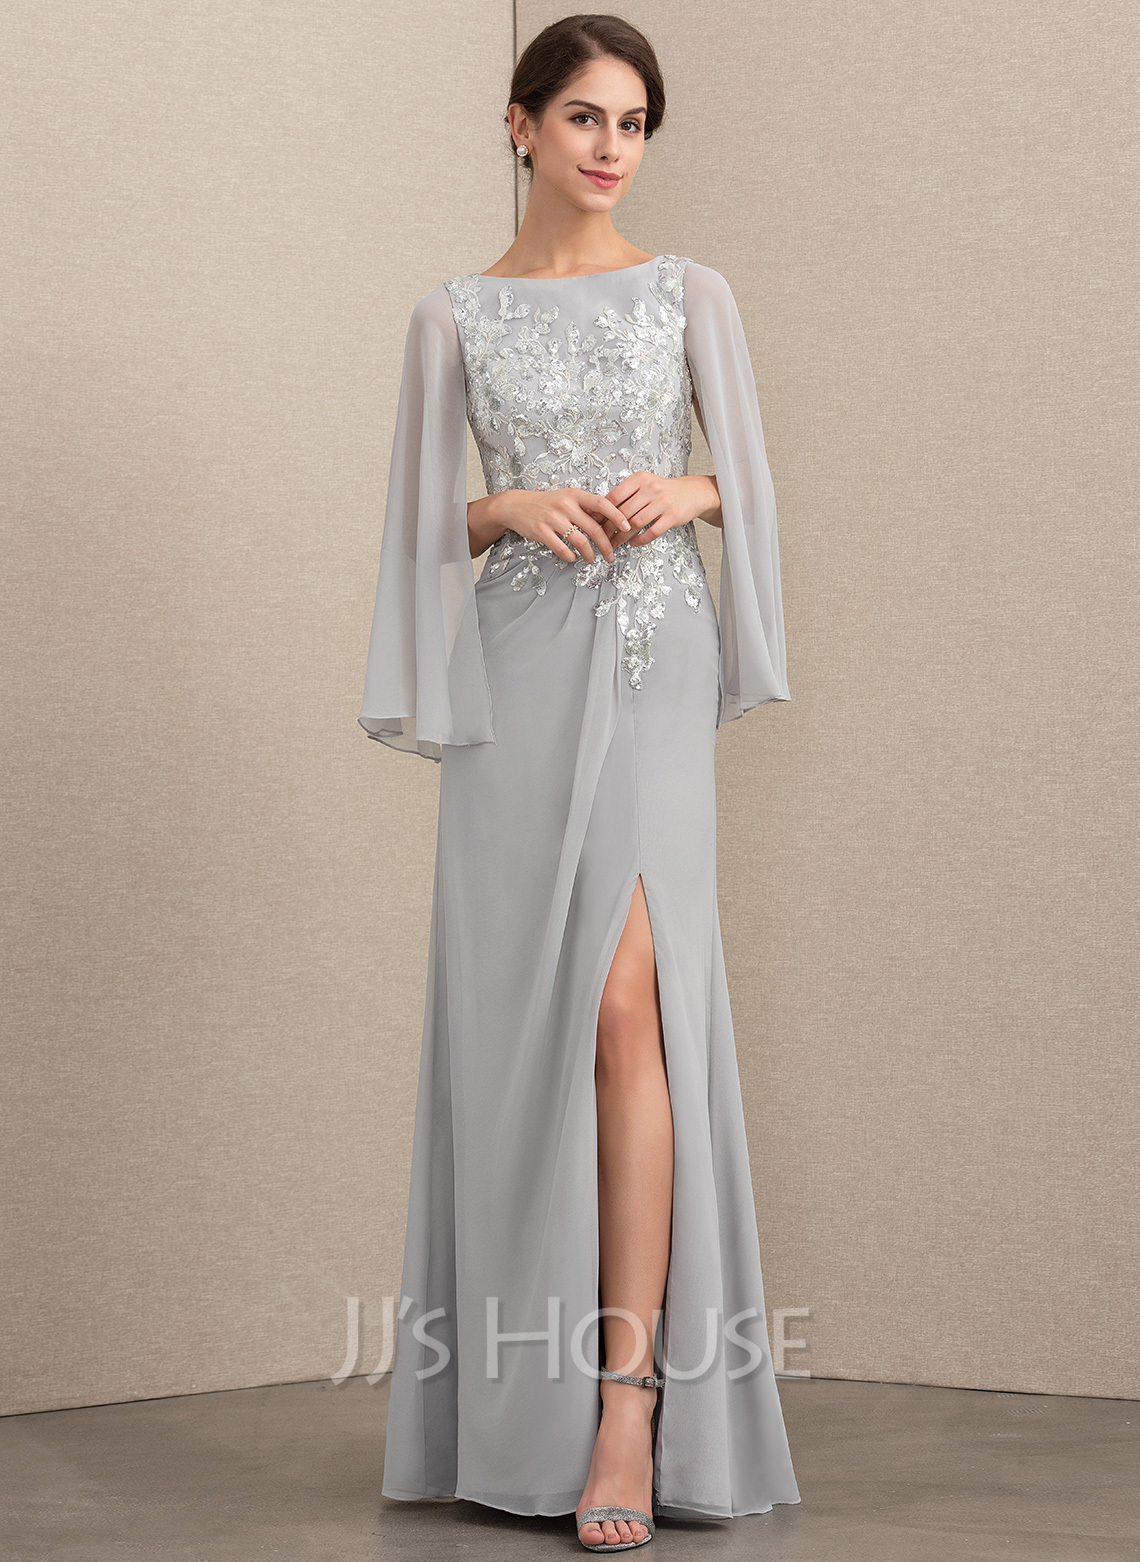 fbc7591d962 A-Line Princess Scoop Neck Floor-Length Chiffon Sequined Mother of the  Bride. Loading zoom